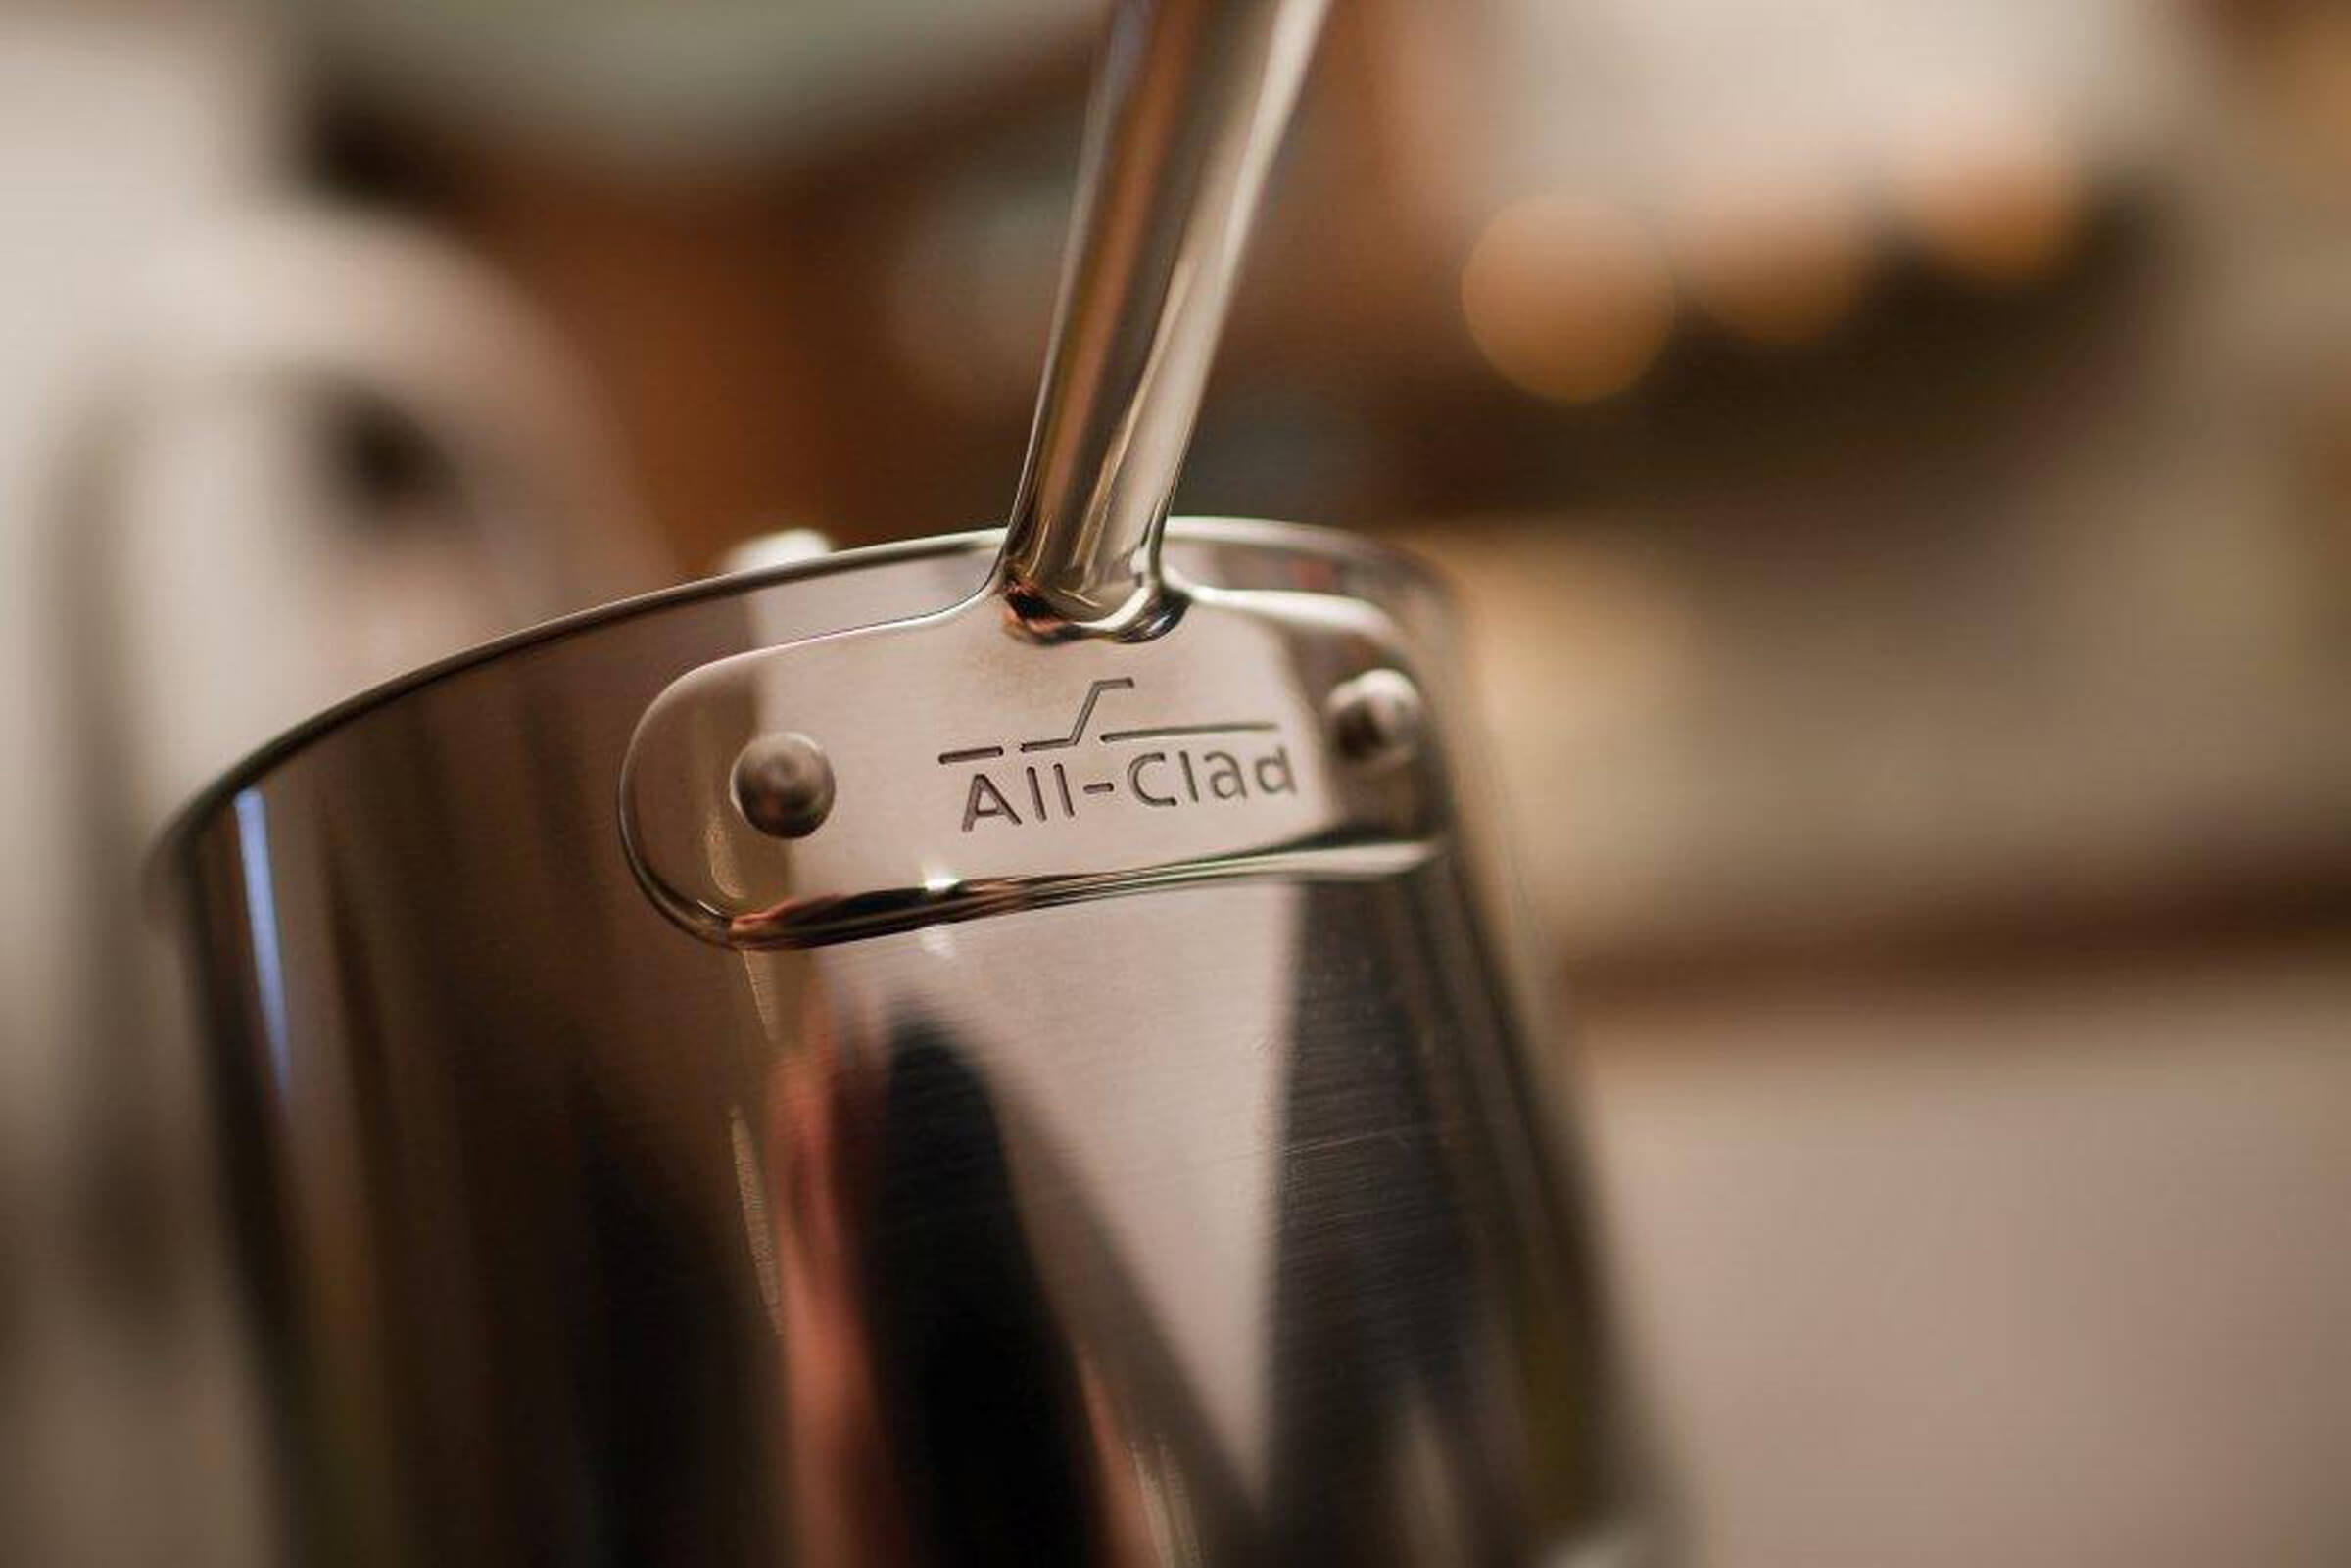 How to plan a kitchen remodel and new kitchen appliances. A close up photo of a stainless steel pot on a stove top of a remodeled kitchen.